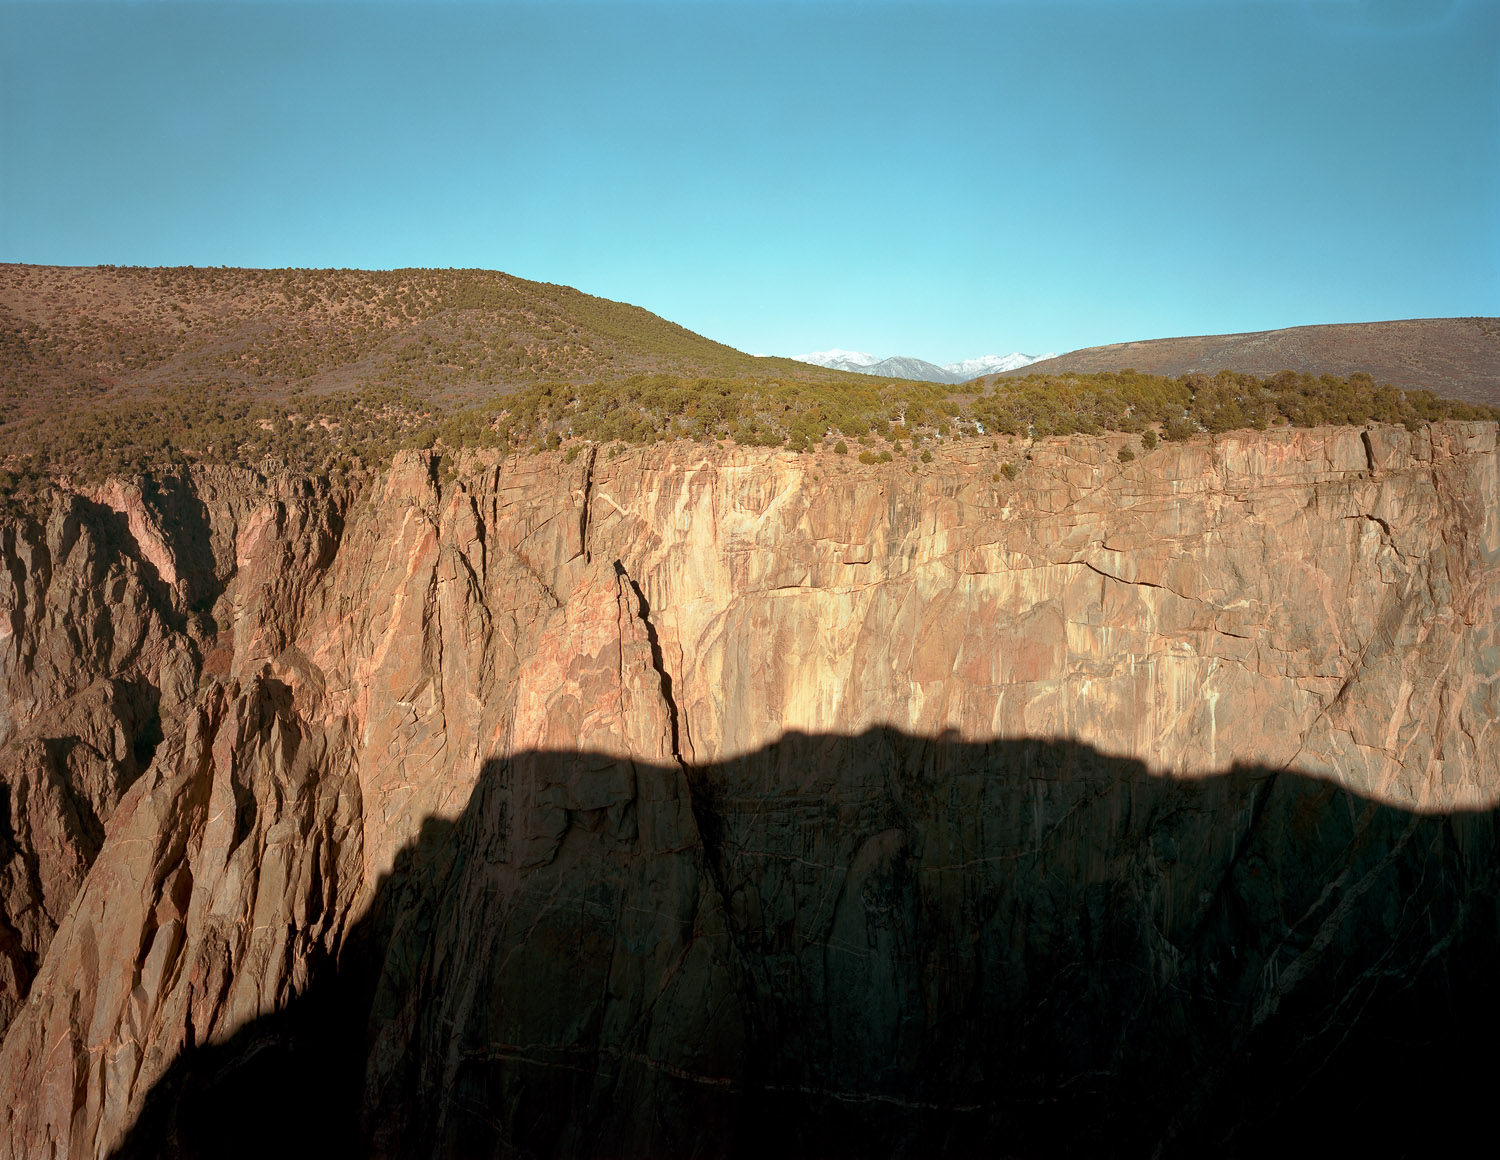 Chasm View, Black Canyon of the Gunnison N.P., Montrose, CO, 2015